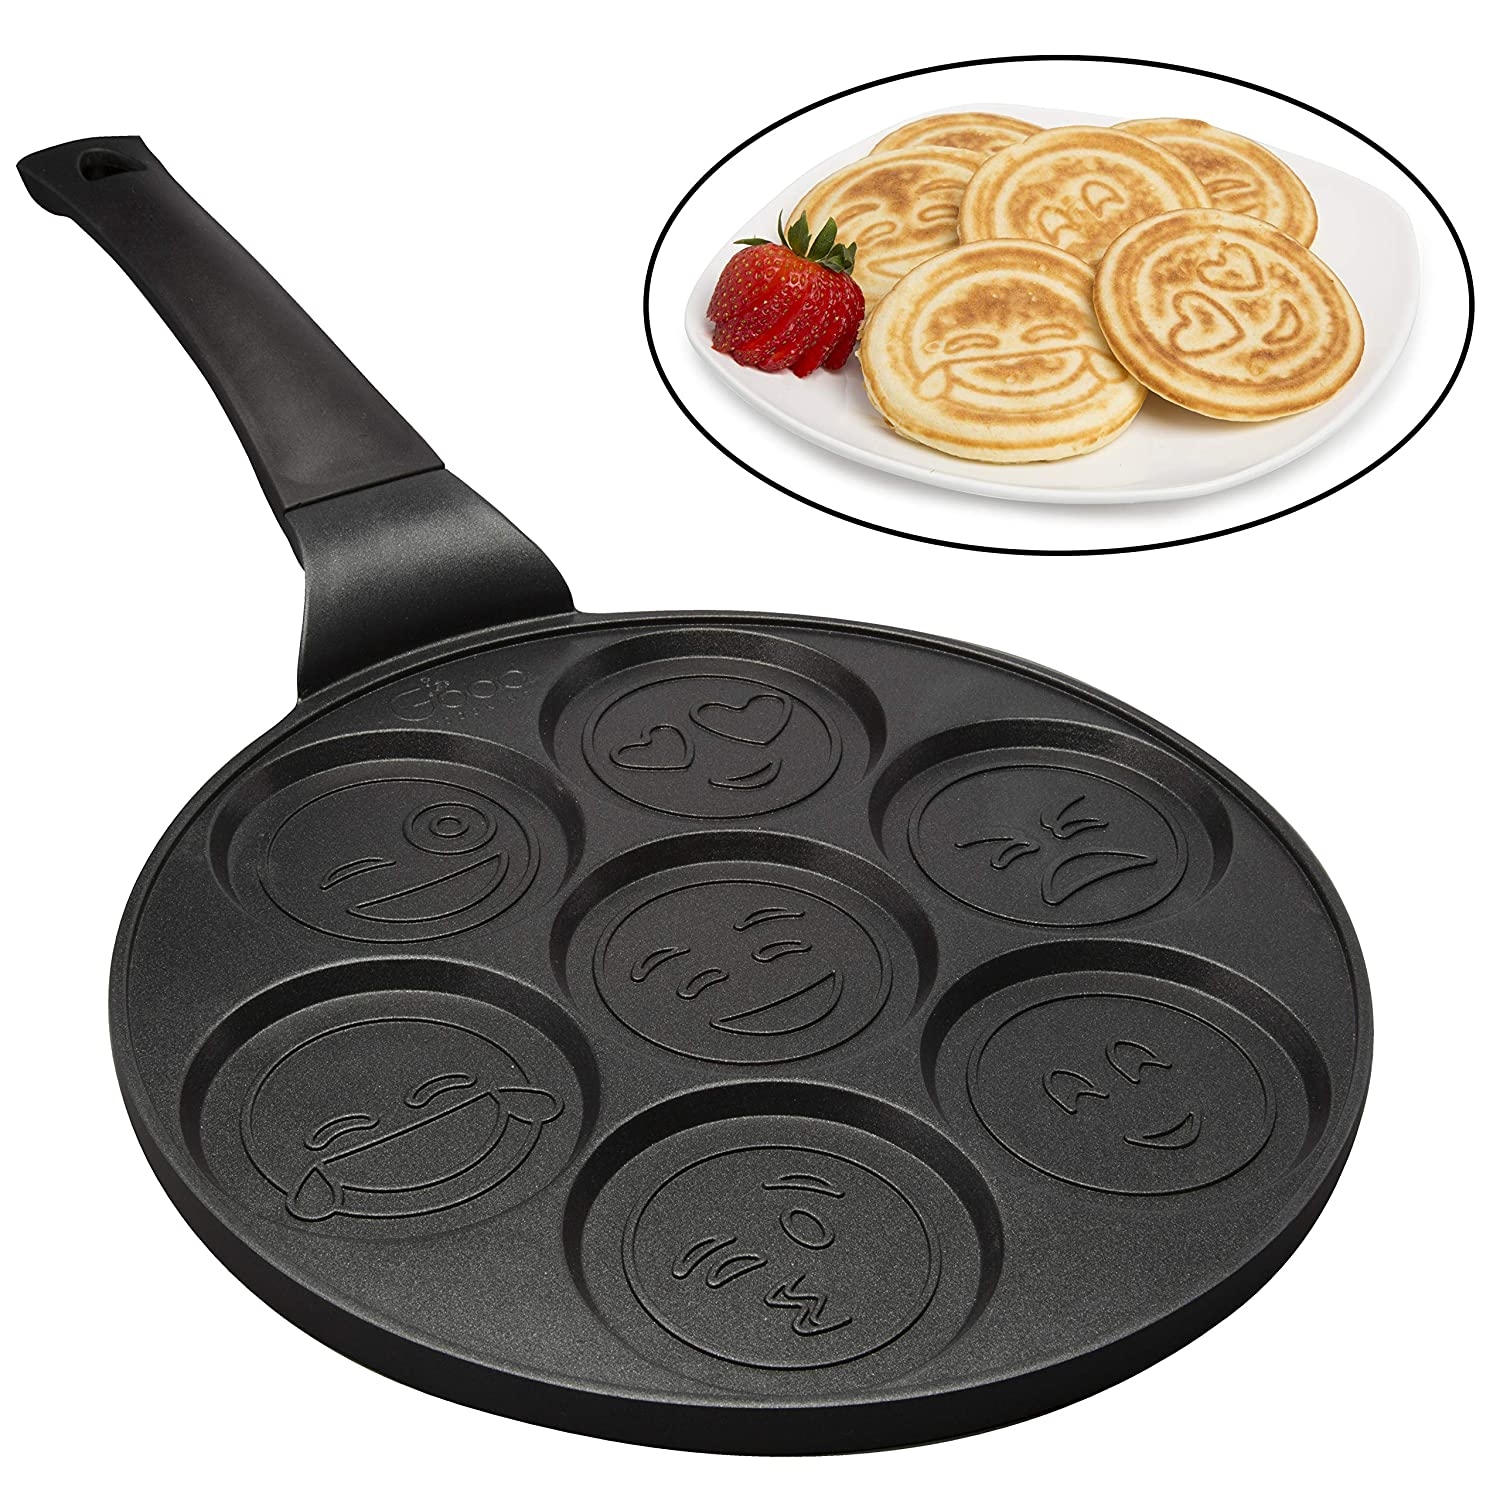 Best Pancake Griddle Reviews 2019: Top 5+ Recommended 6 #cookymom